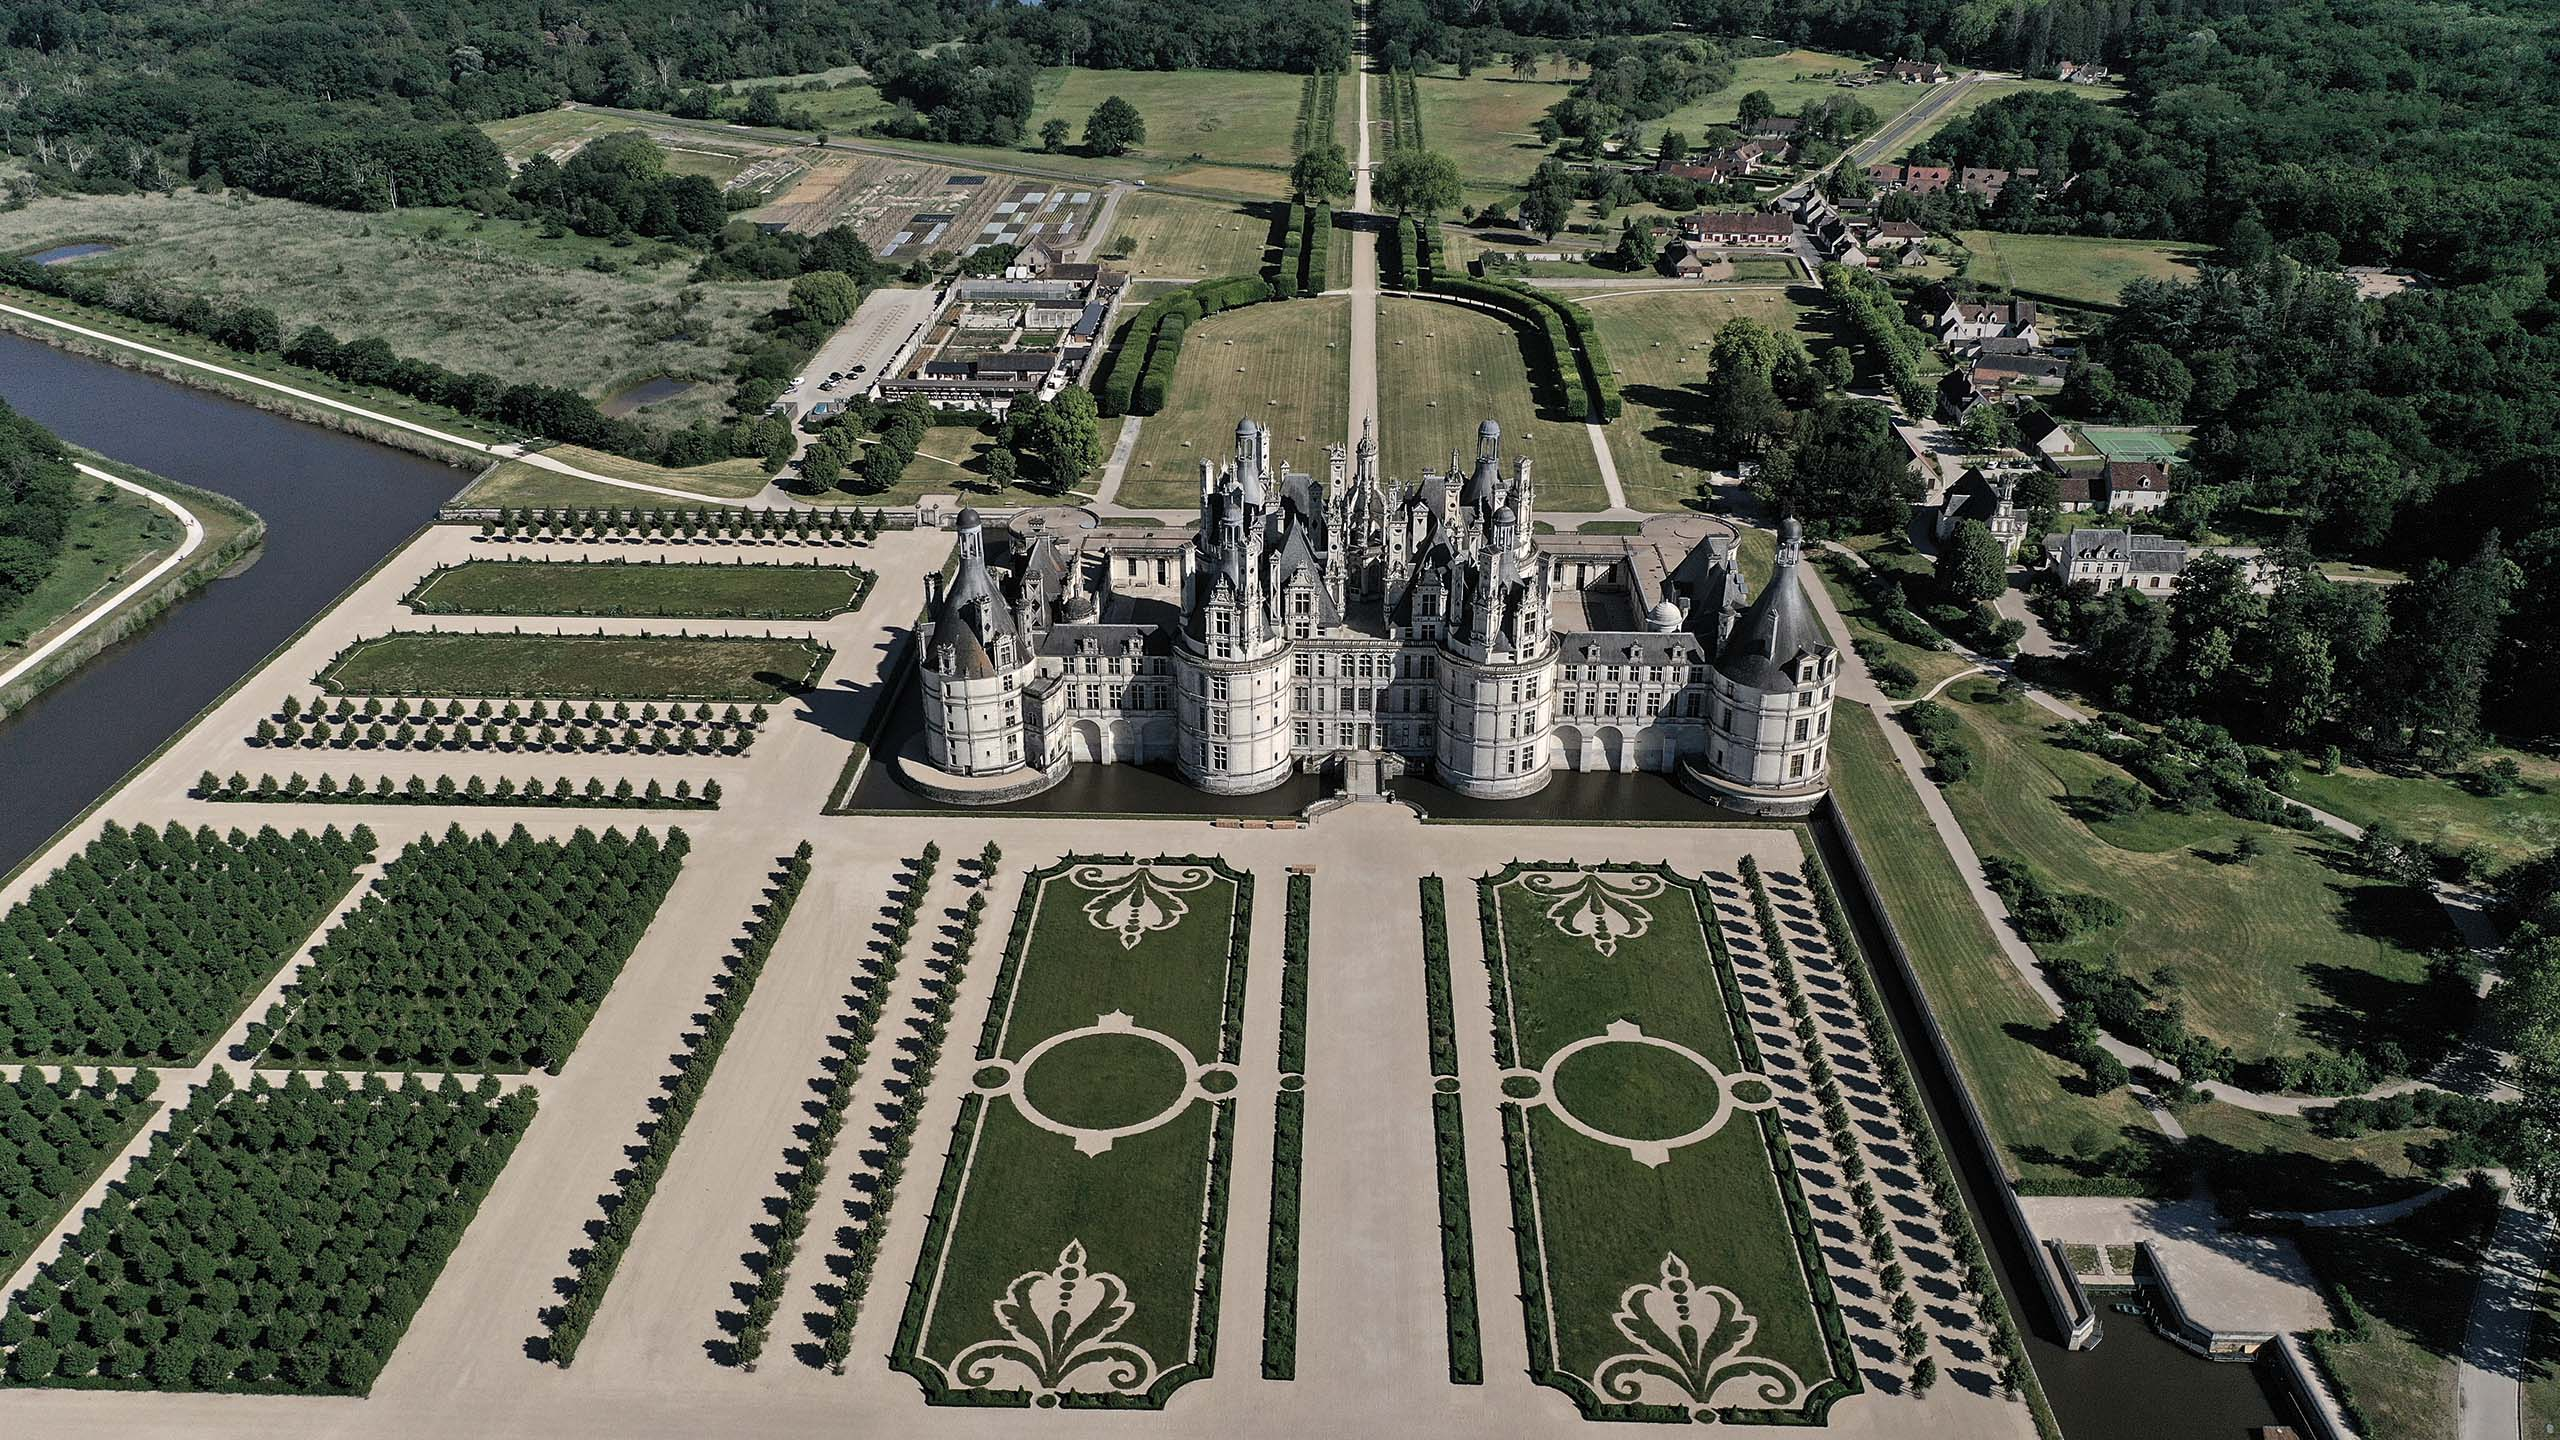 Domaine national de Chambord, France